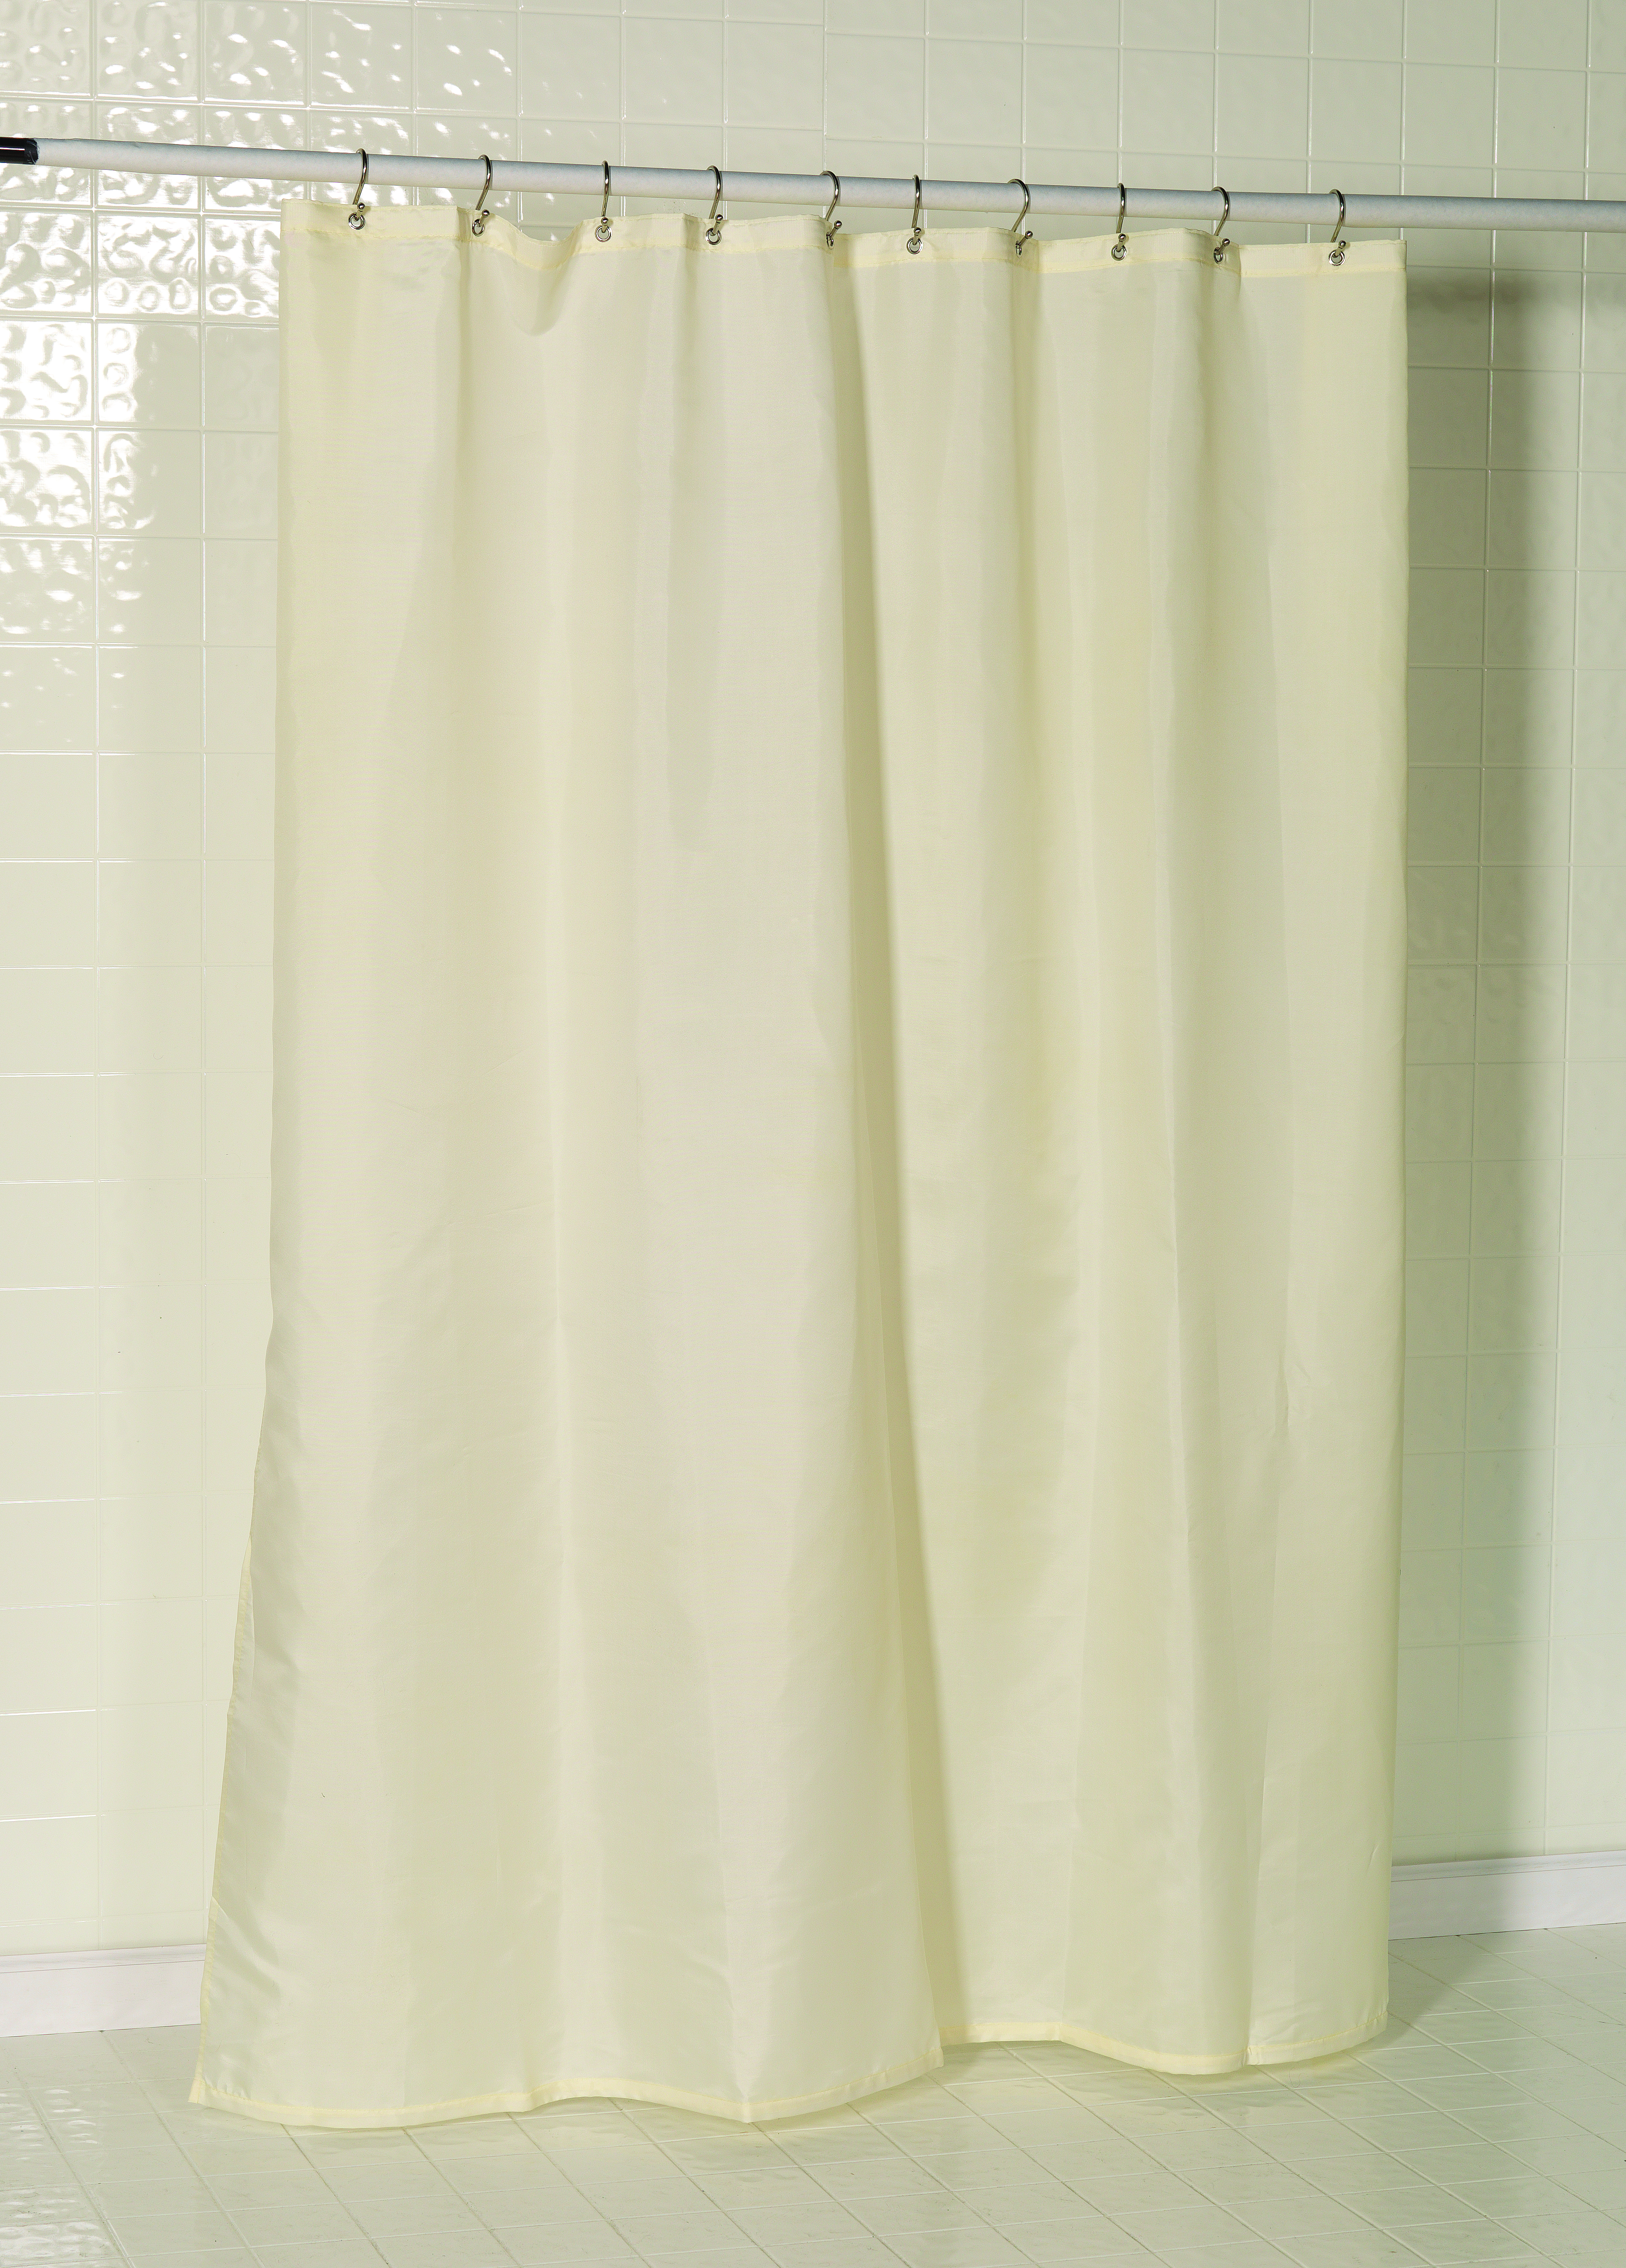 Nylon fabric shower curtain liner with reinforced mesh heade